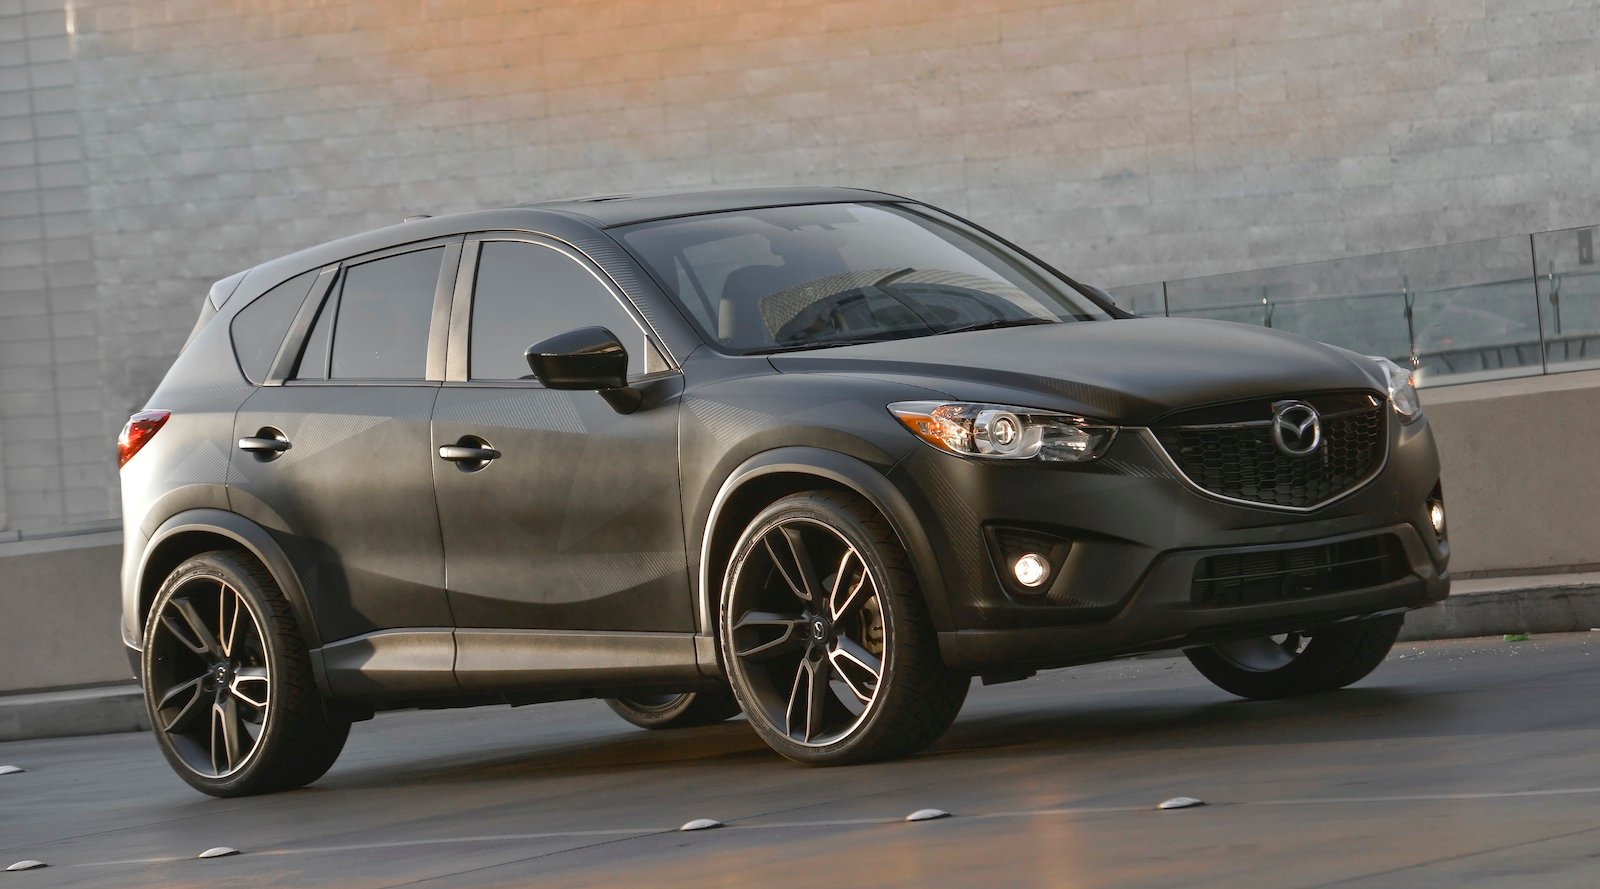 mazda cx 5 trio pounces into sema photos 1 of 9. Black Bedroom Furniture Sets. Home Design Ideas